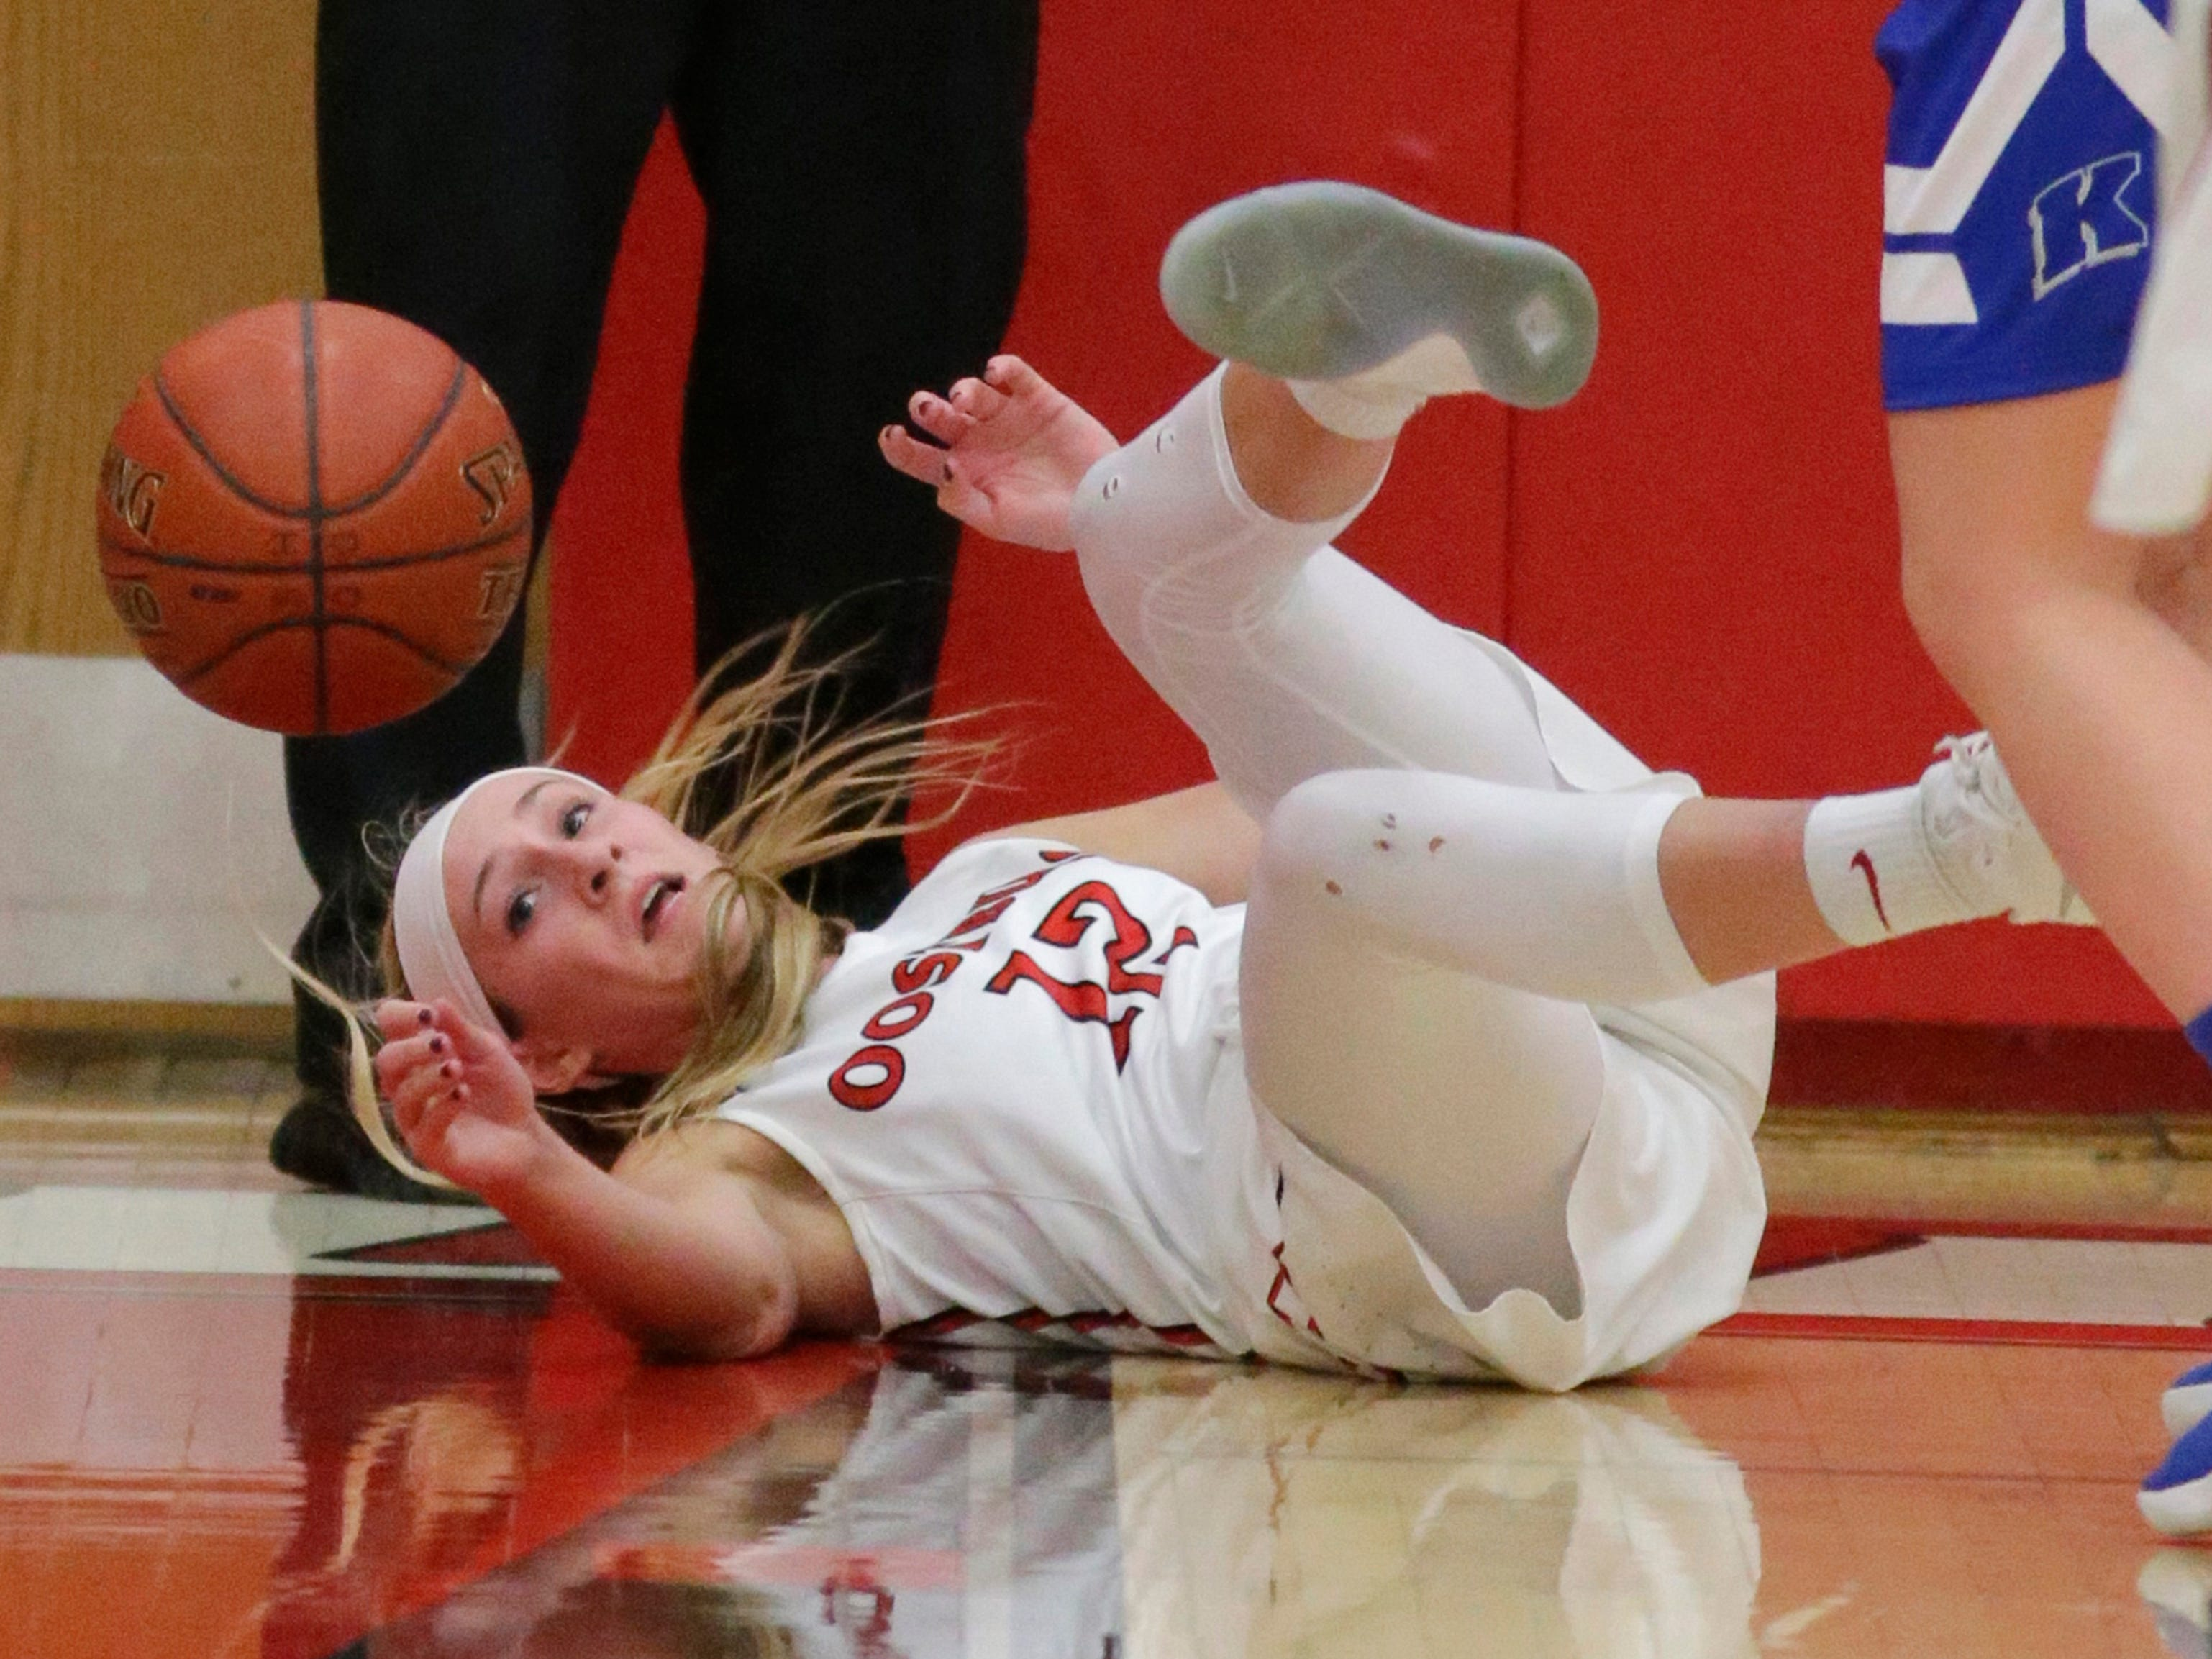 Oostburg's Olivia Meerdink (12) looks up at the ball after scrambling for a loose ball against Kohler, Saturday, February 3, 2018 in Oostburg, Wis.